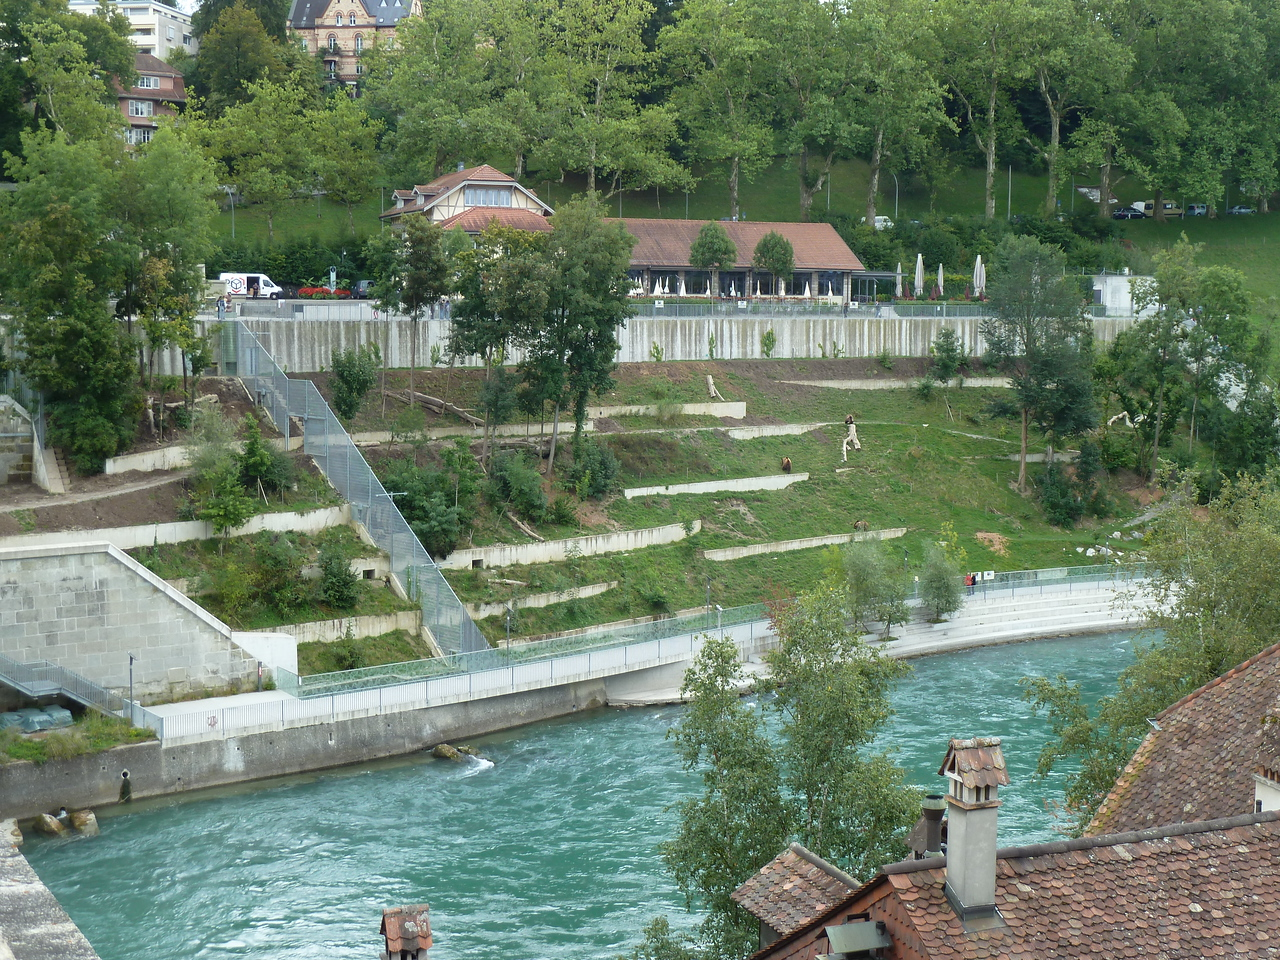 The bear enclosure in Bern.